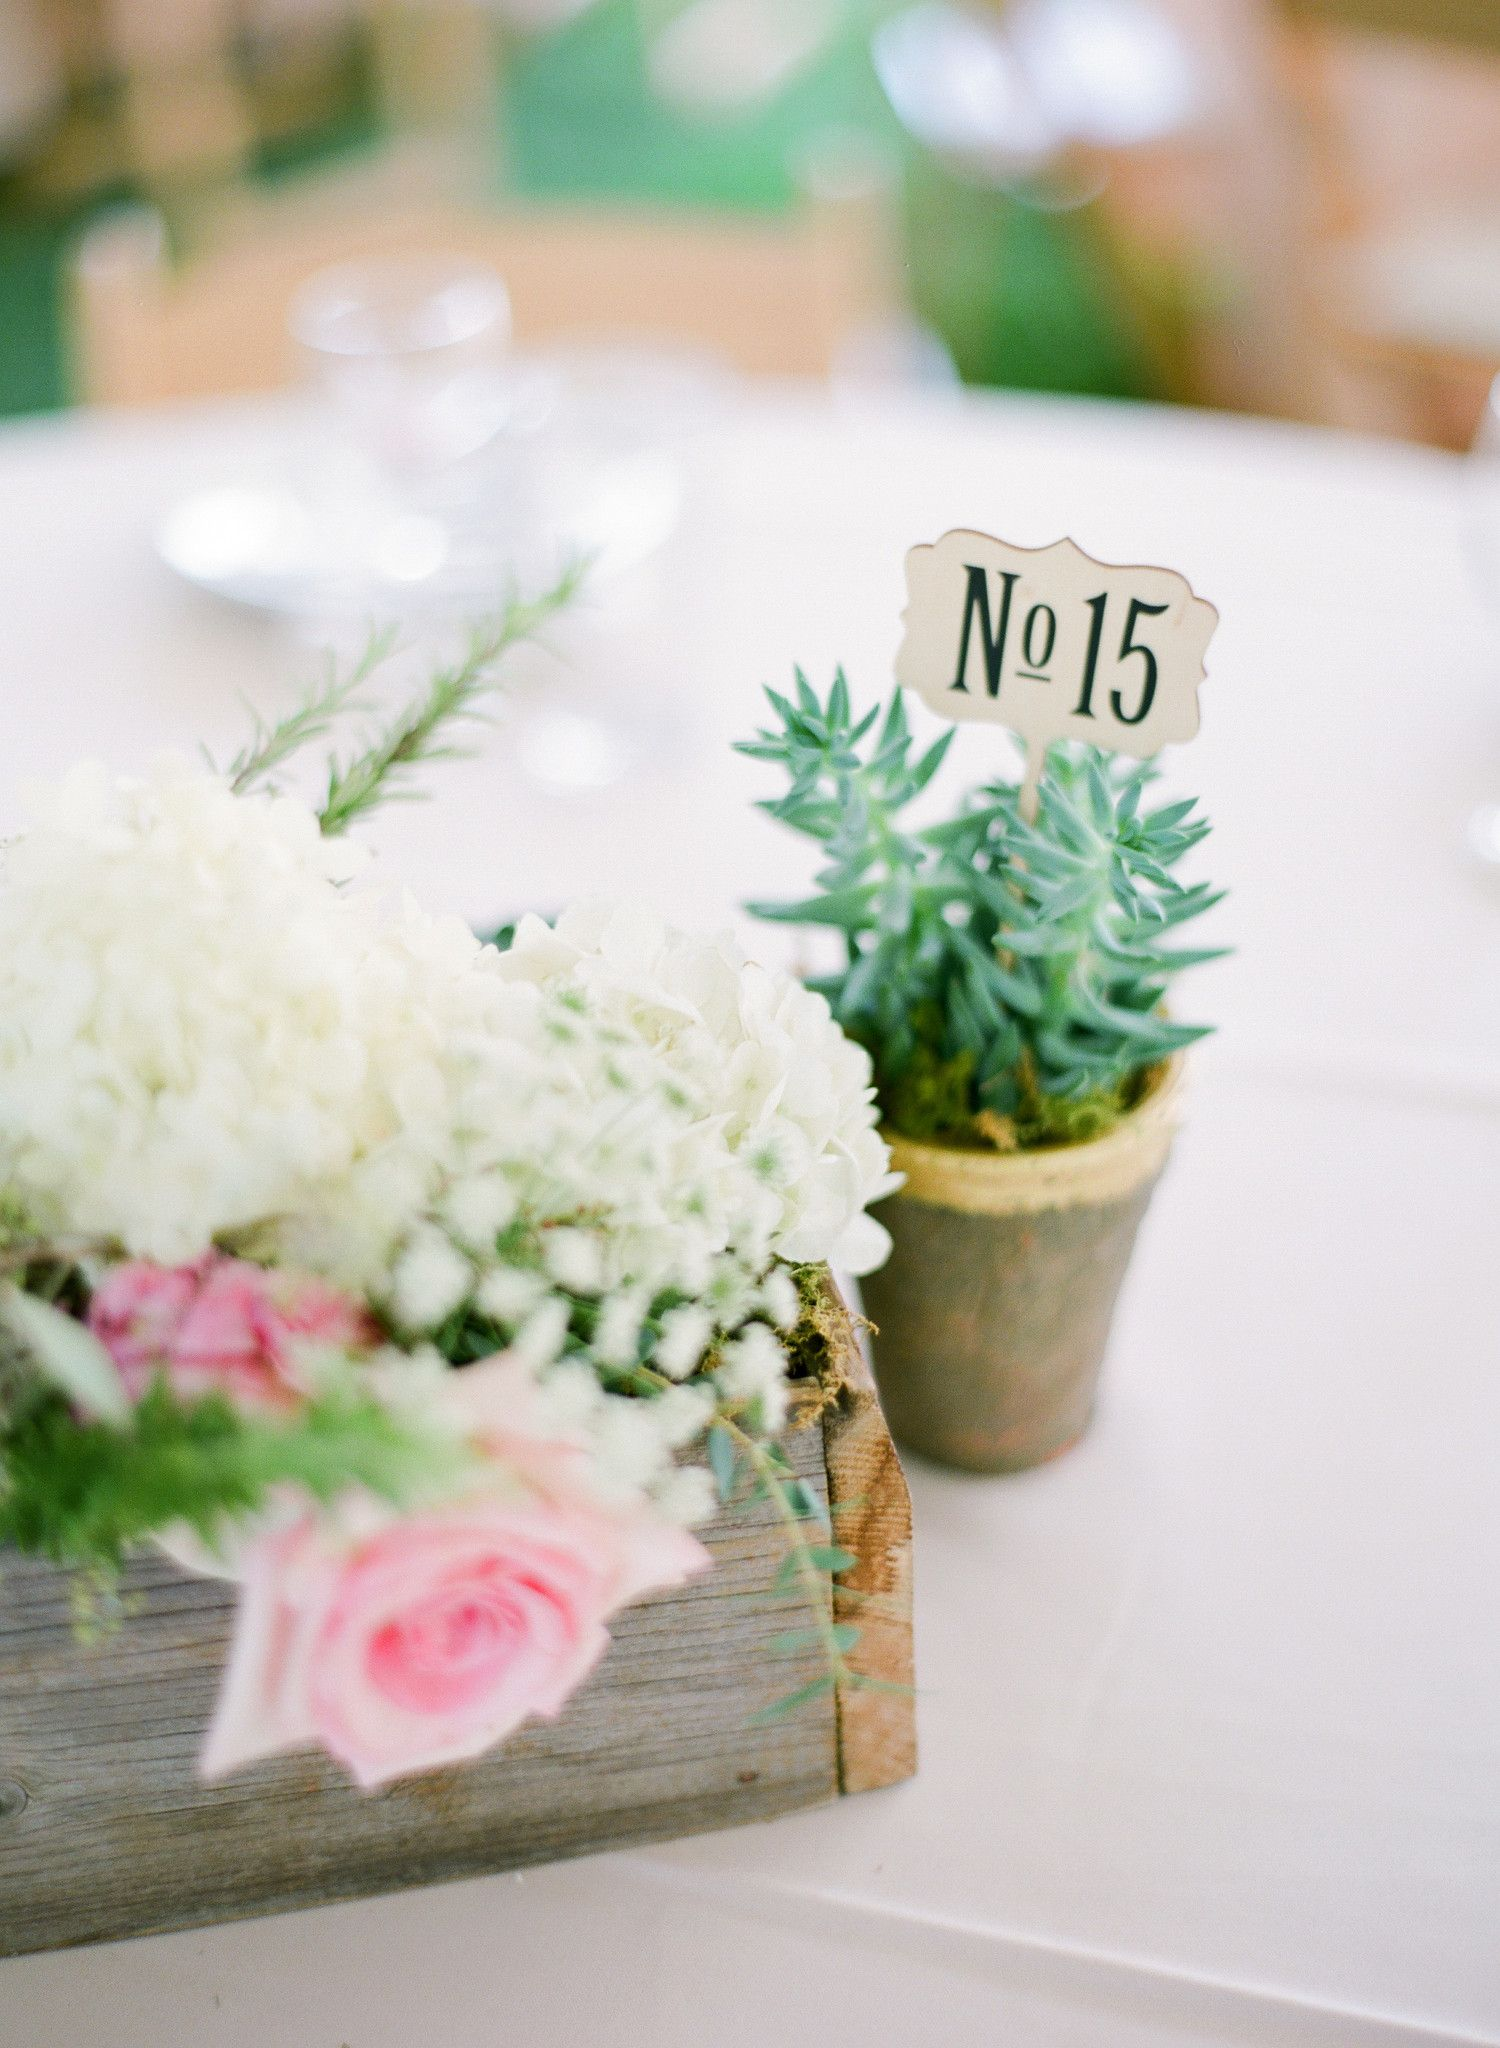 Potted plants always add a fun element to wedding centerpieces. We ...